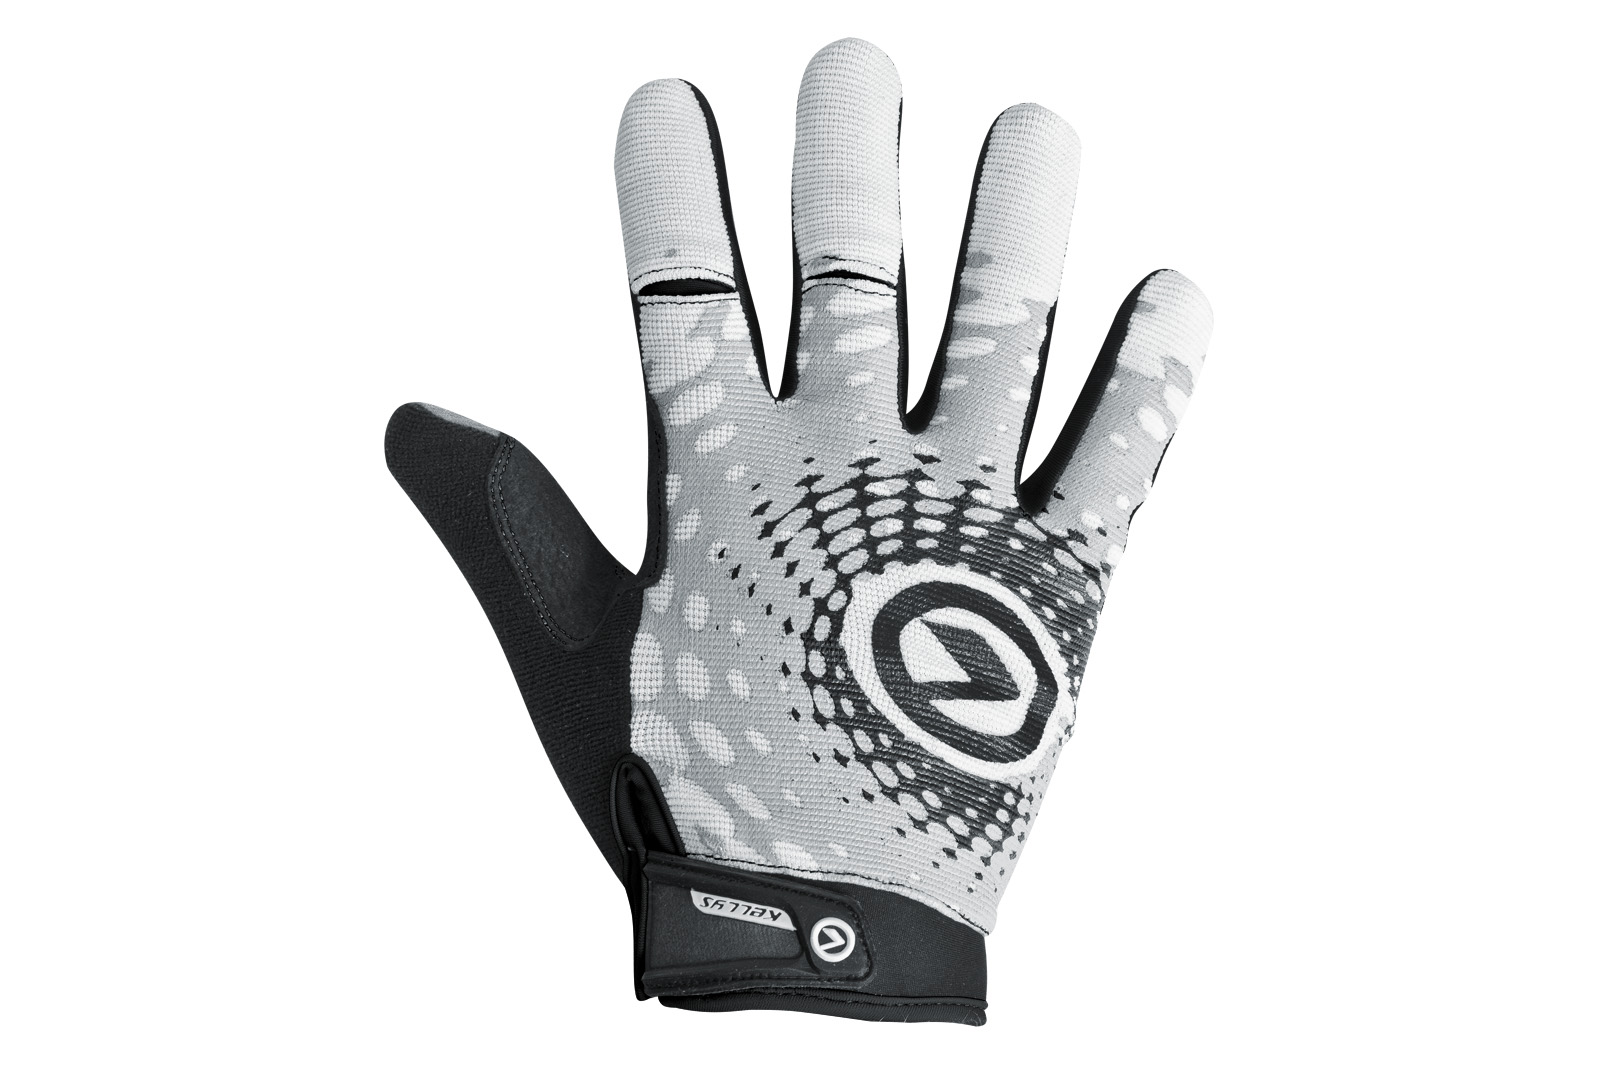 Handschuhe IMPACT long white-grey-black S - Handschuhe IMPACT long white-grey-black S